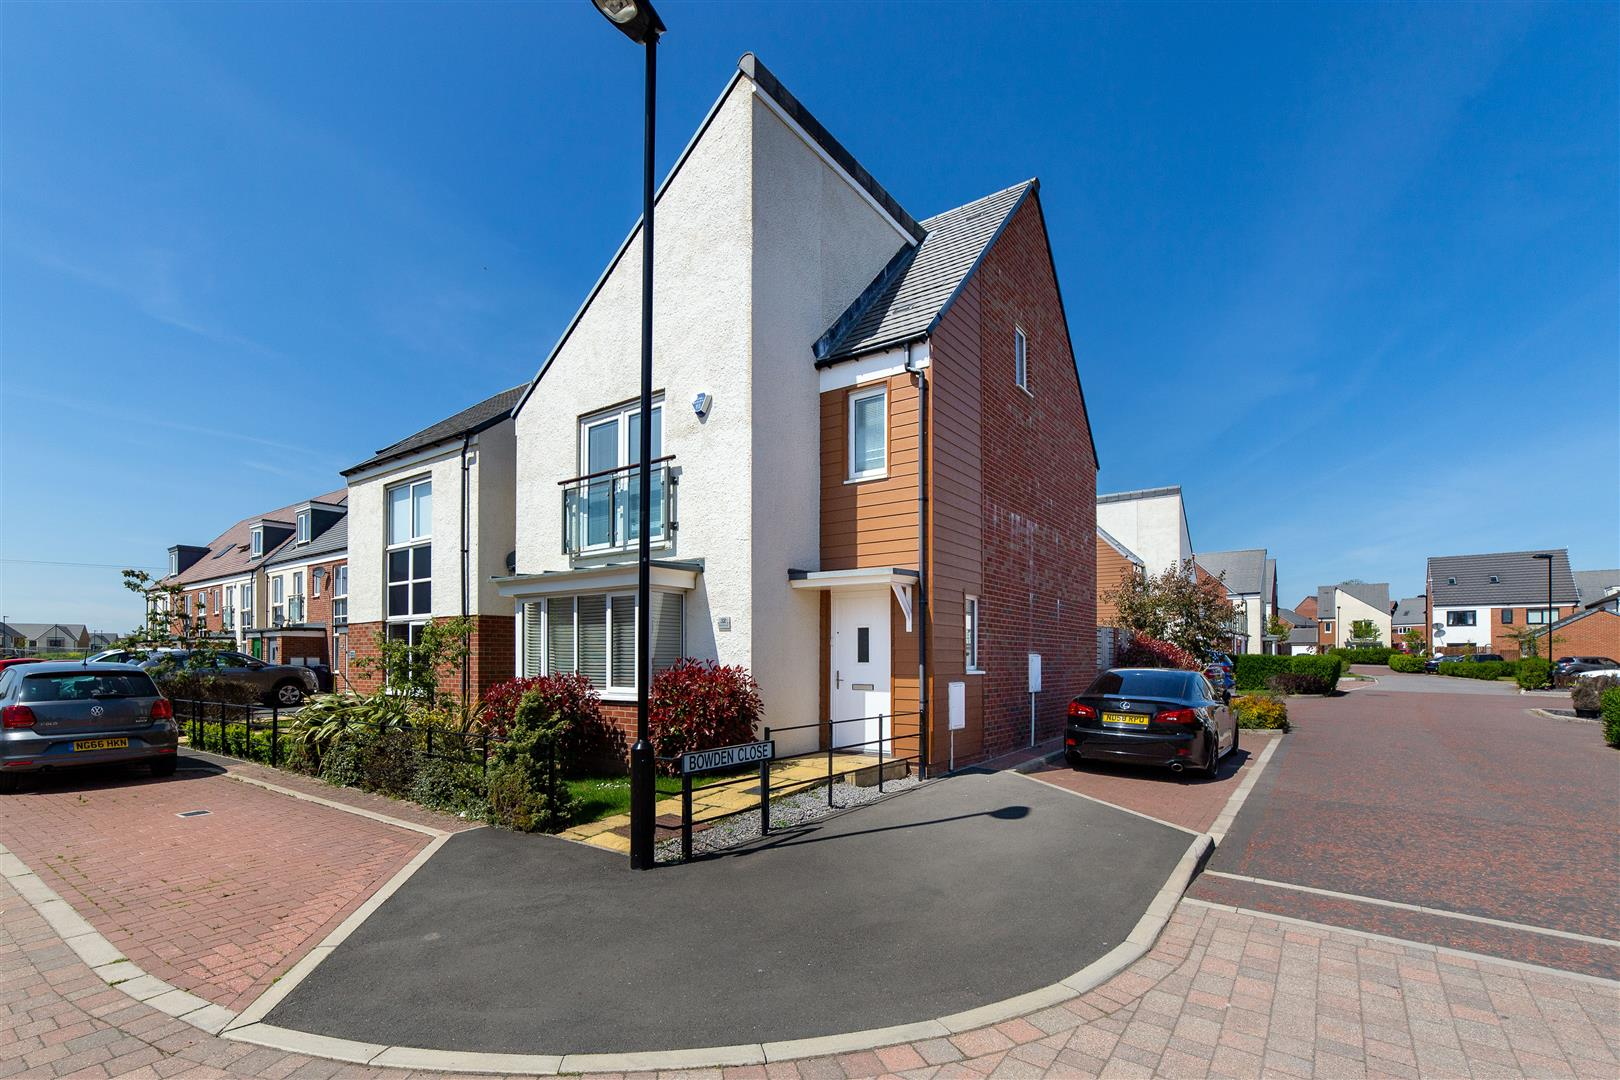 4 bed detached house for sale in Lynemouth Way, Great Park, NE13